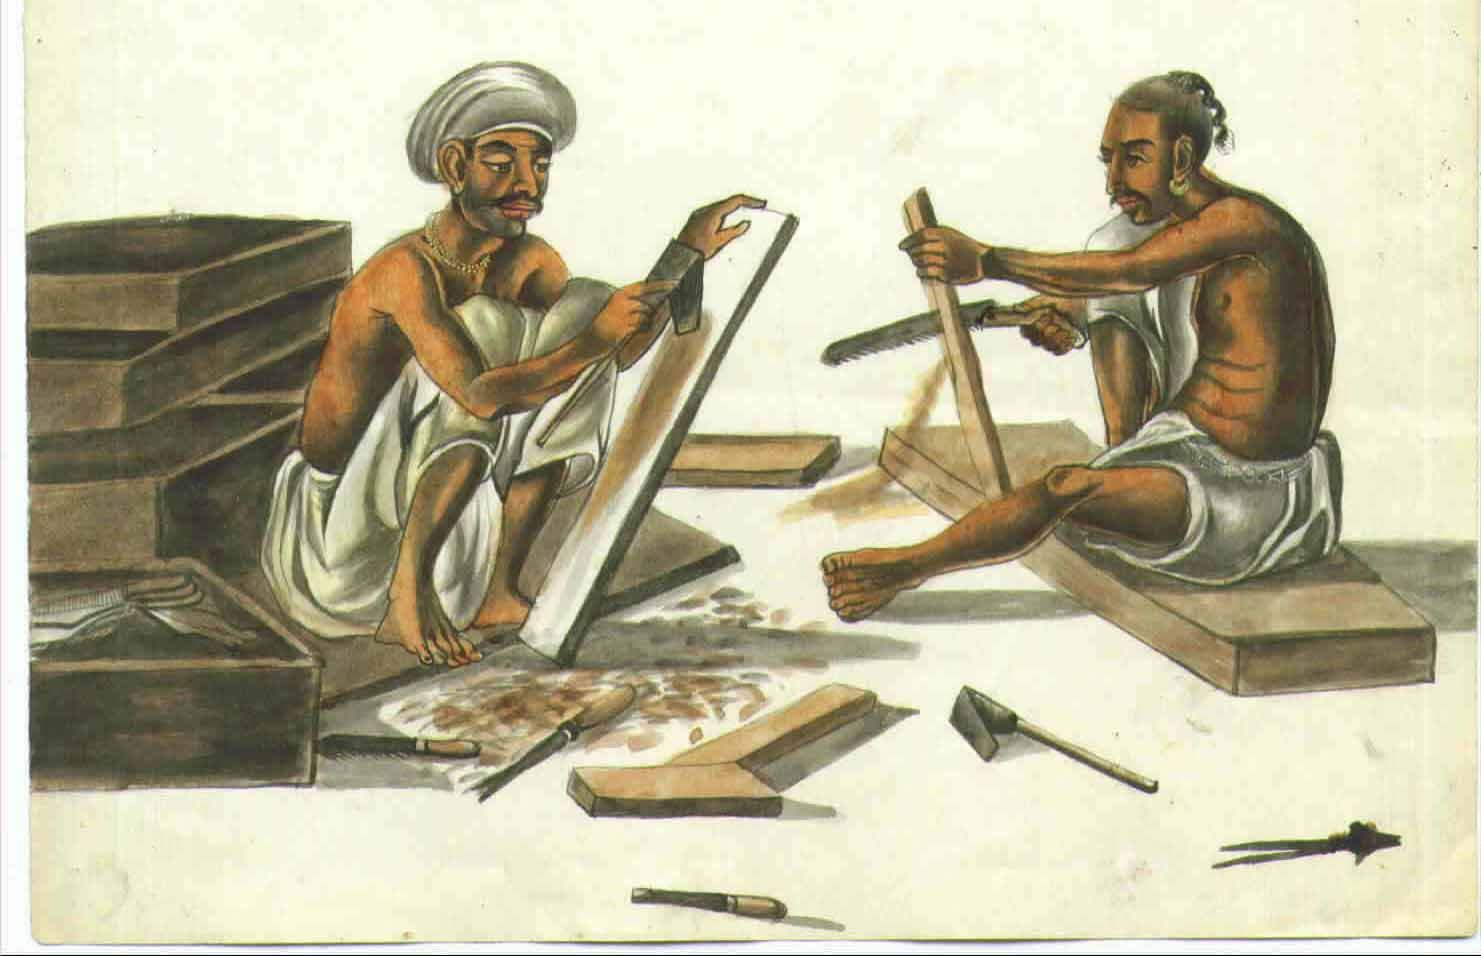 Indian clipart carpenter The Story: Carpenter Story: The